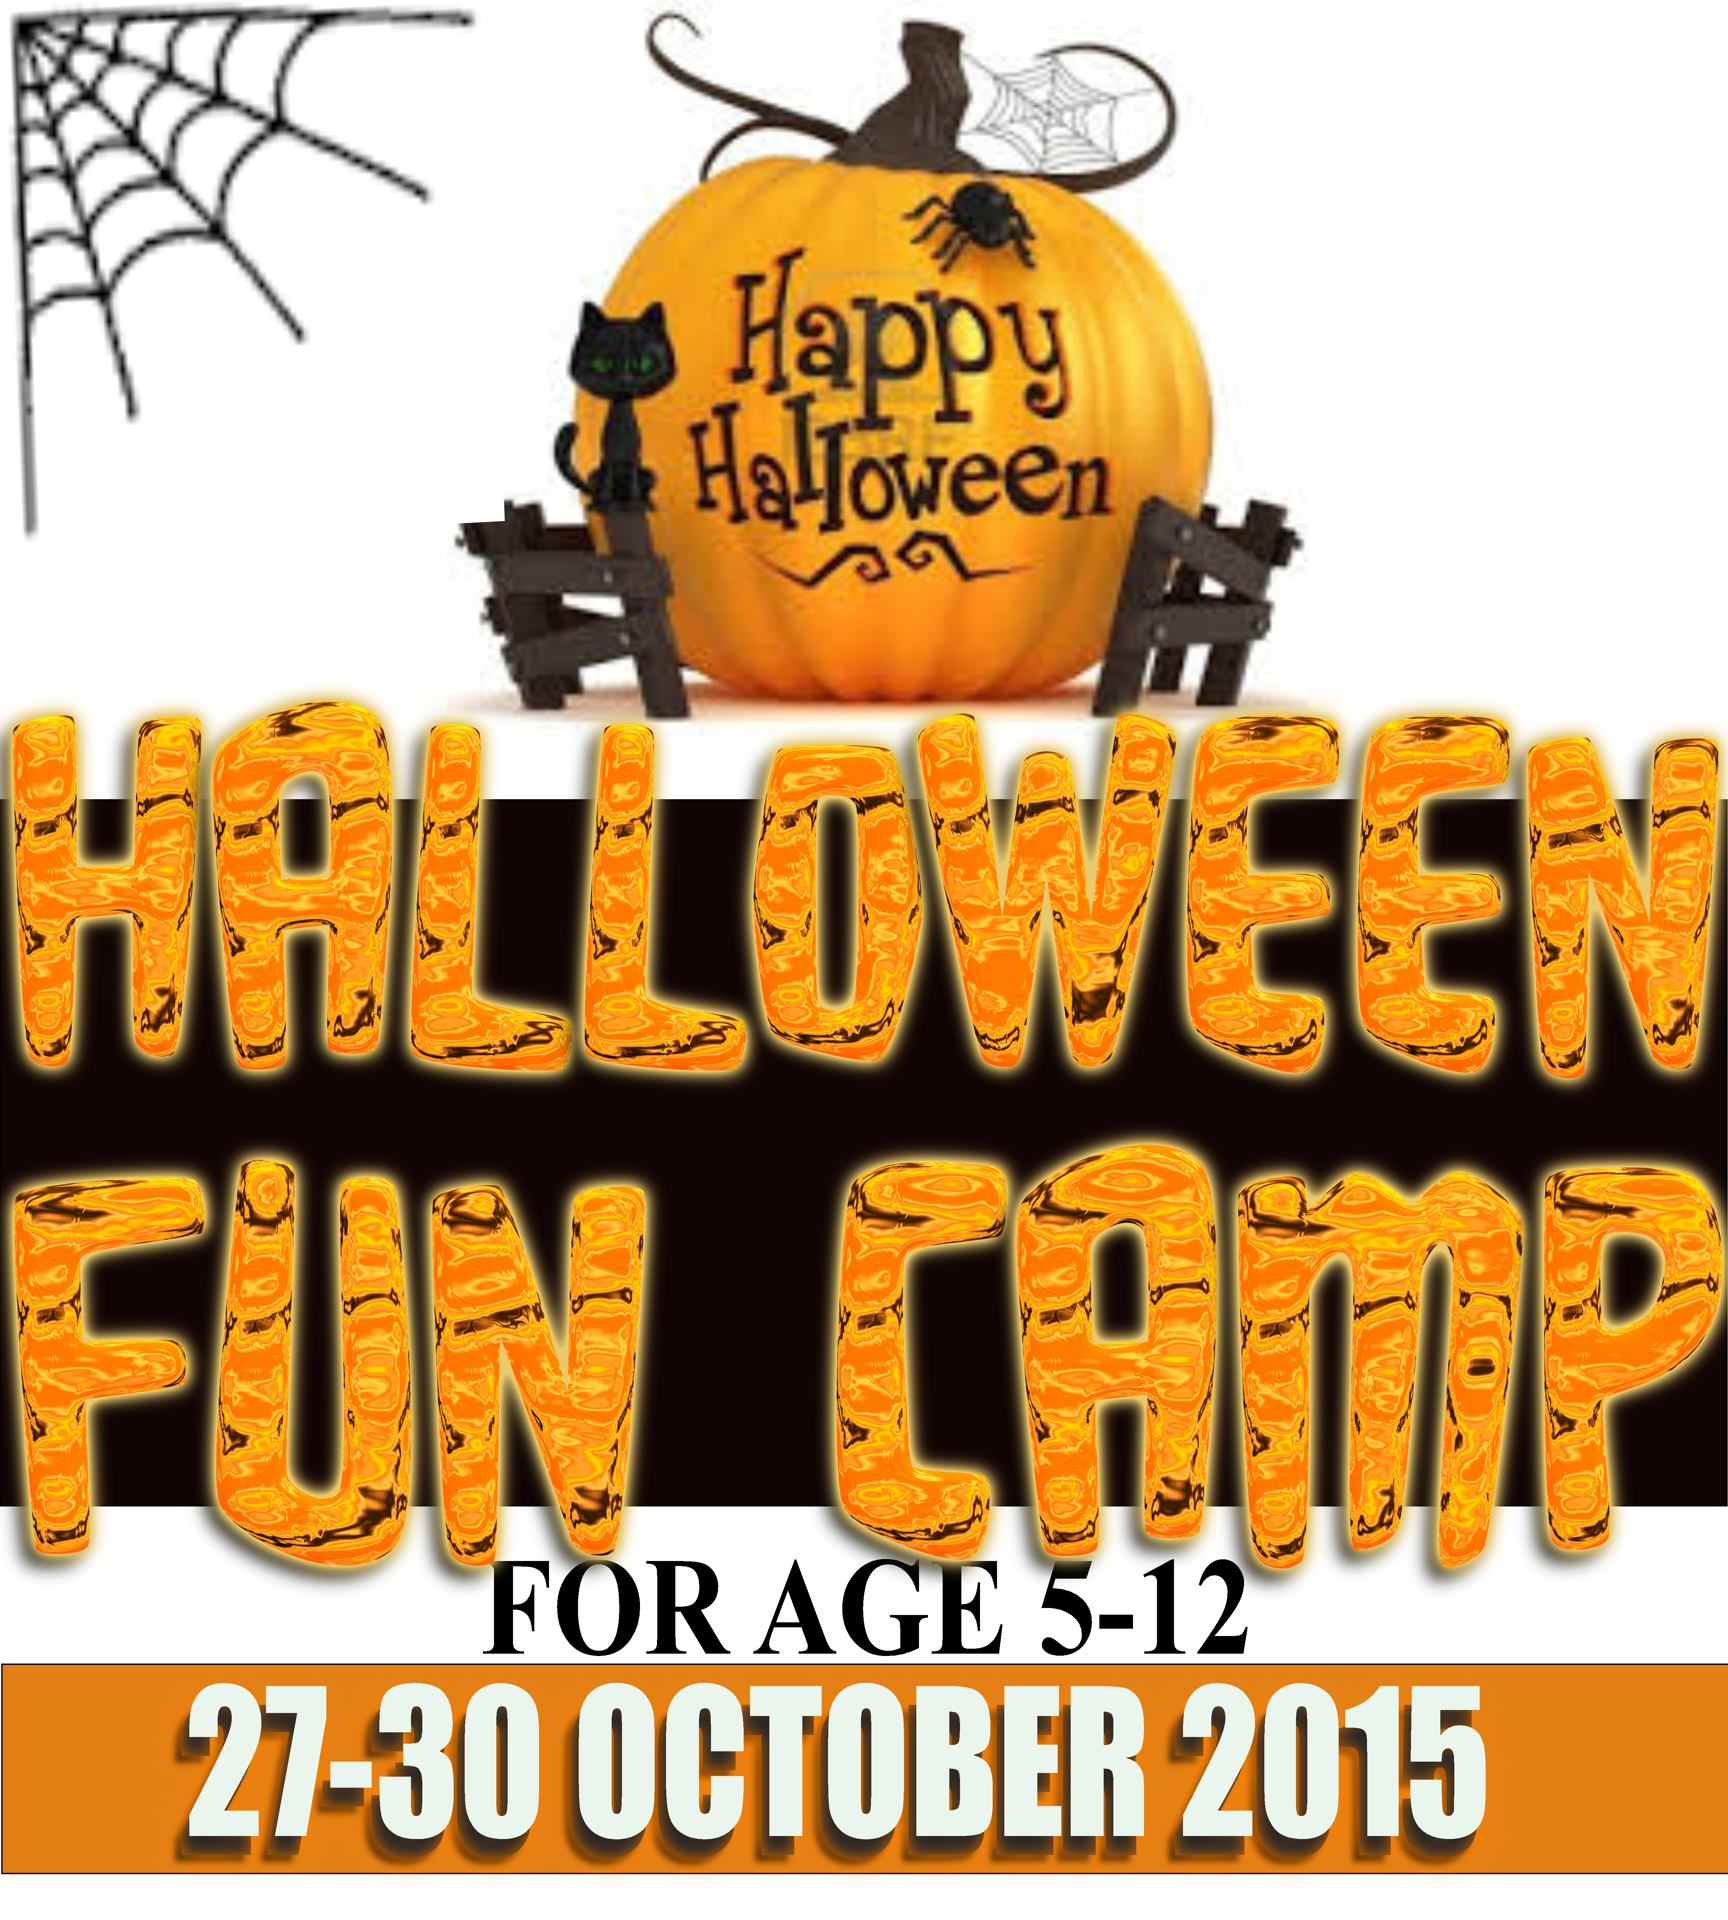 HALLOWEEN CAMP 27-30 OCTOBER 2015 €45